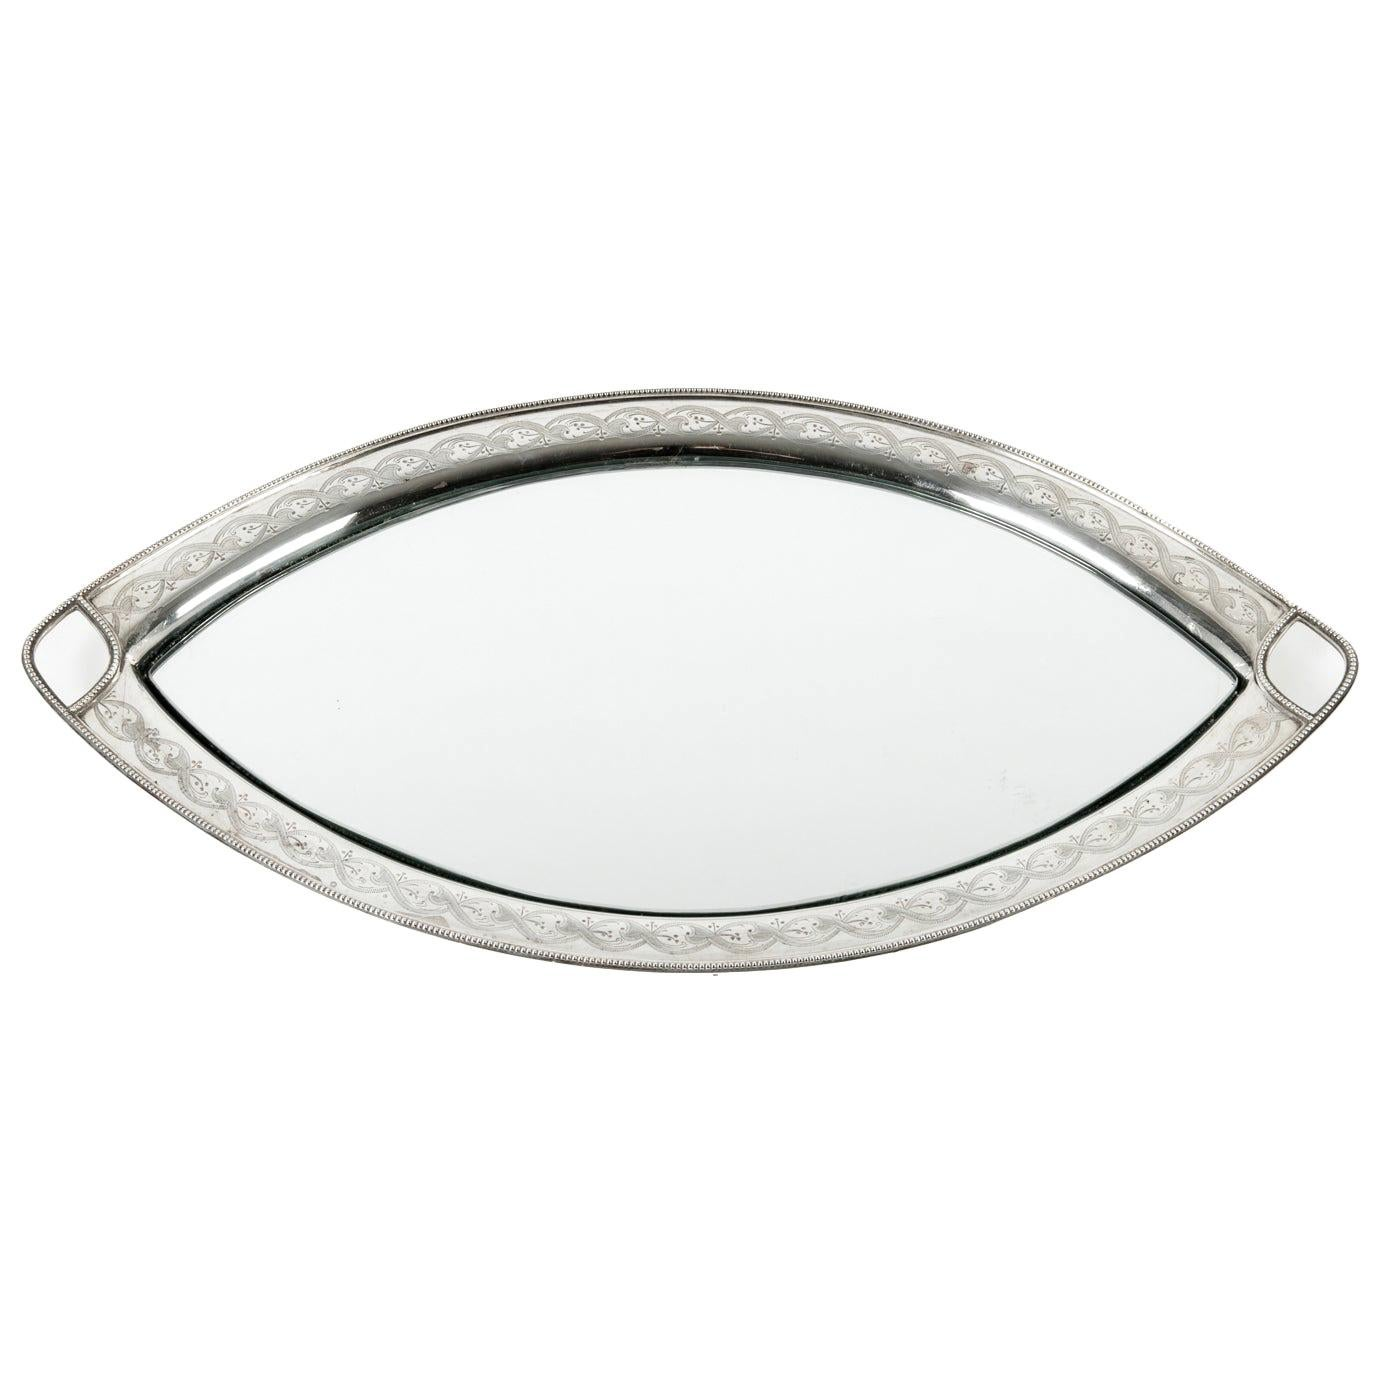 English Silver Plate Footed Oval Tray or Mirror Insert